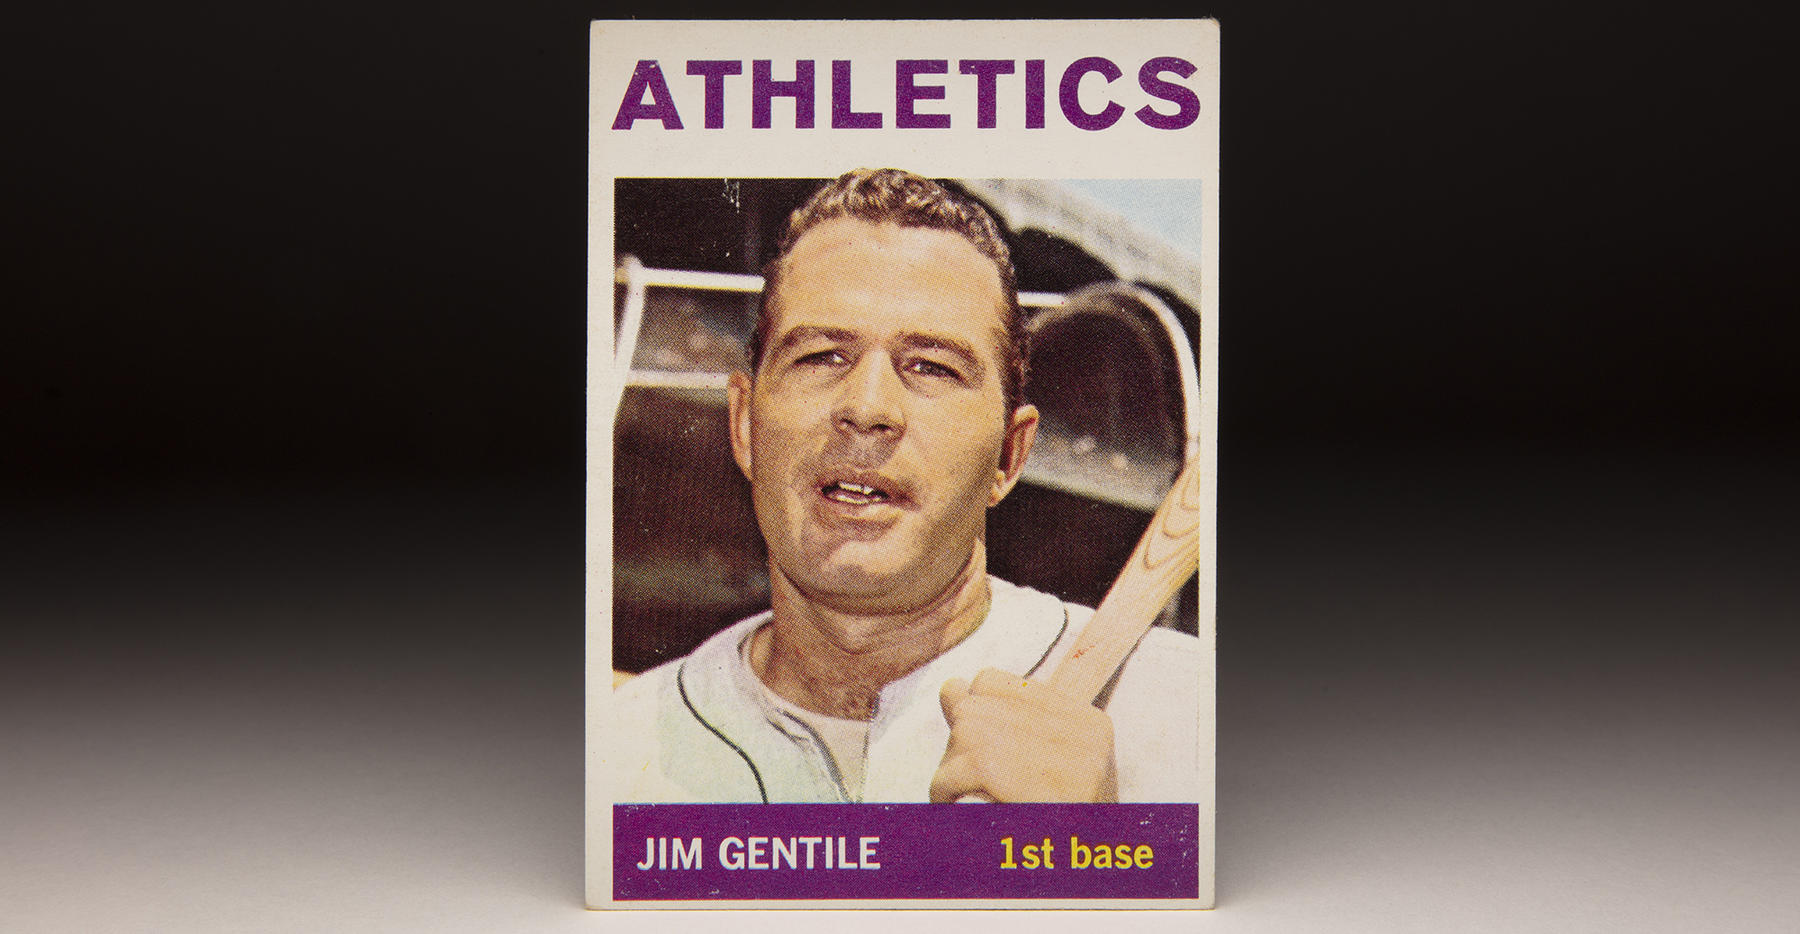 Jim Gentile's 1964 Topps card shows off his signature look during his time with the Athletics. (Topps baseball card photographed by Milo Stewart Jr./National Baseball Hall of Fame and Museum)